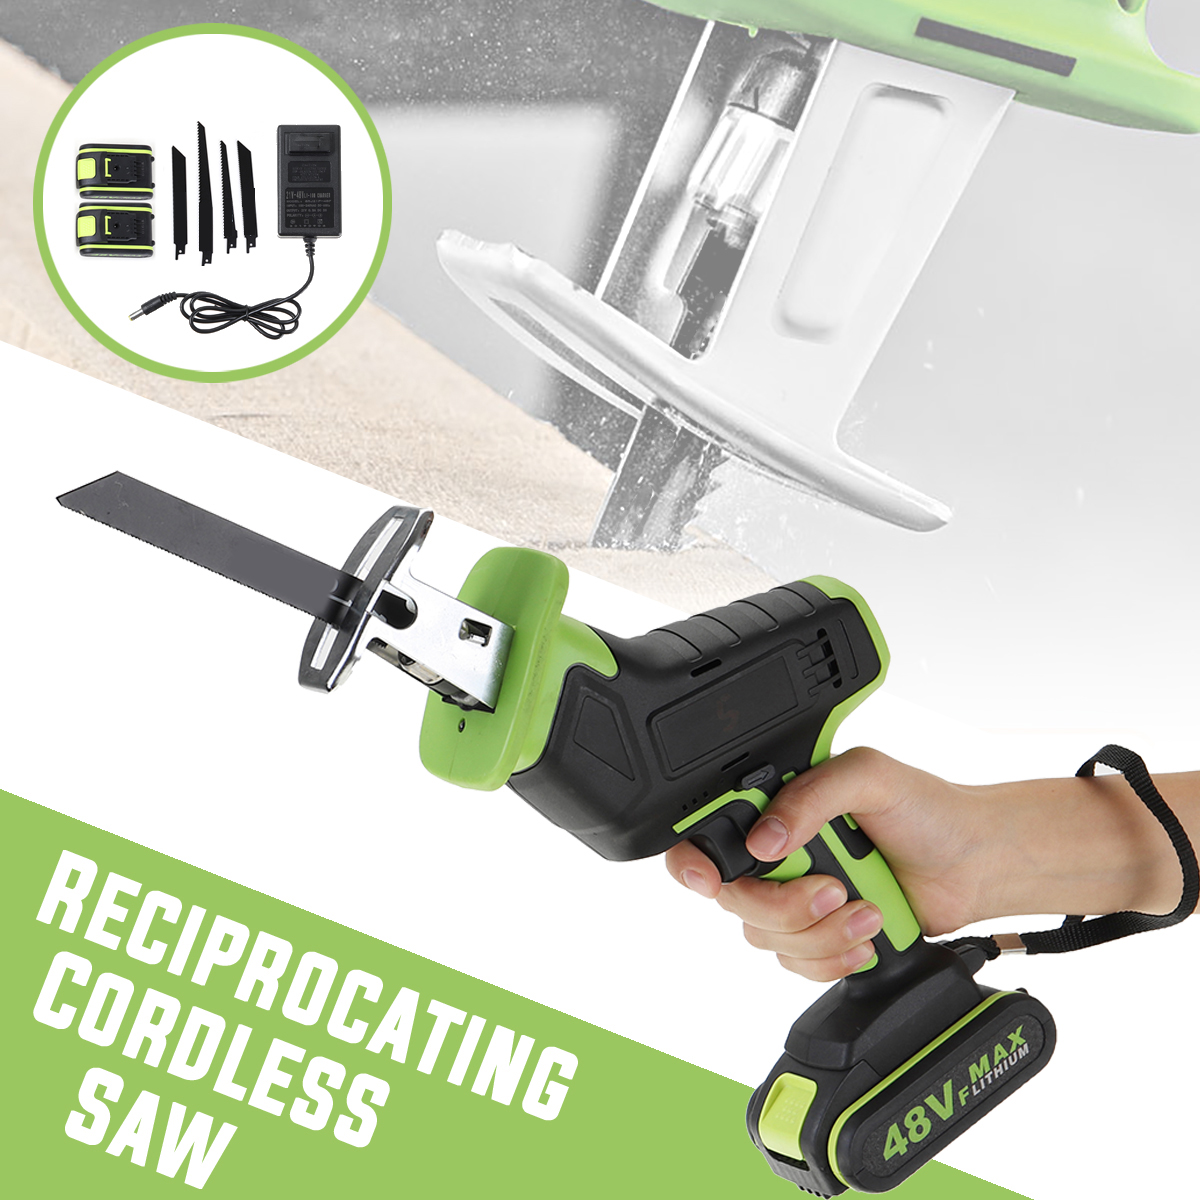 48V Cordless Reciprocating Saw +4 Saw Blades Metal Cutting Wood Tool Portable Woodworking Cutters With 1/2 Battery New